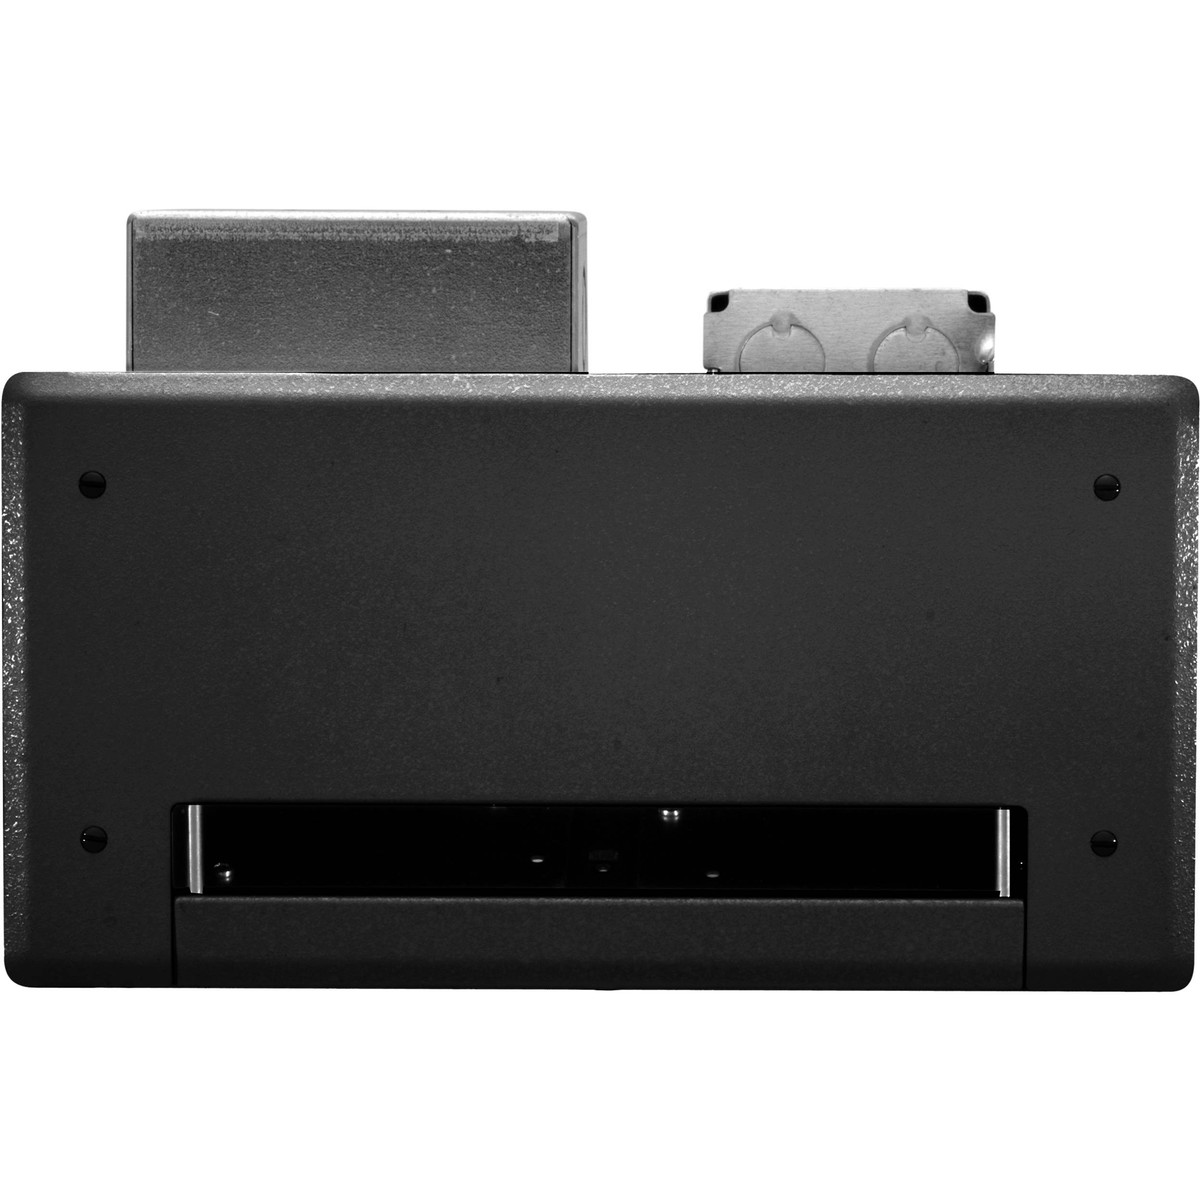 Fsr Pwb 100 16518 In Wall Flat Panel Box For Power Video